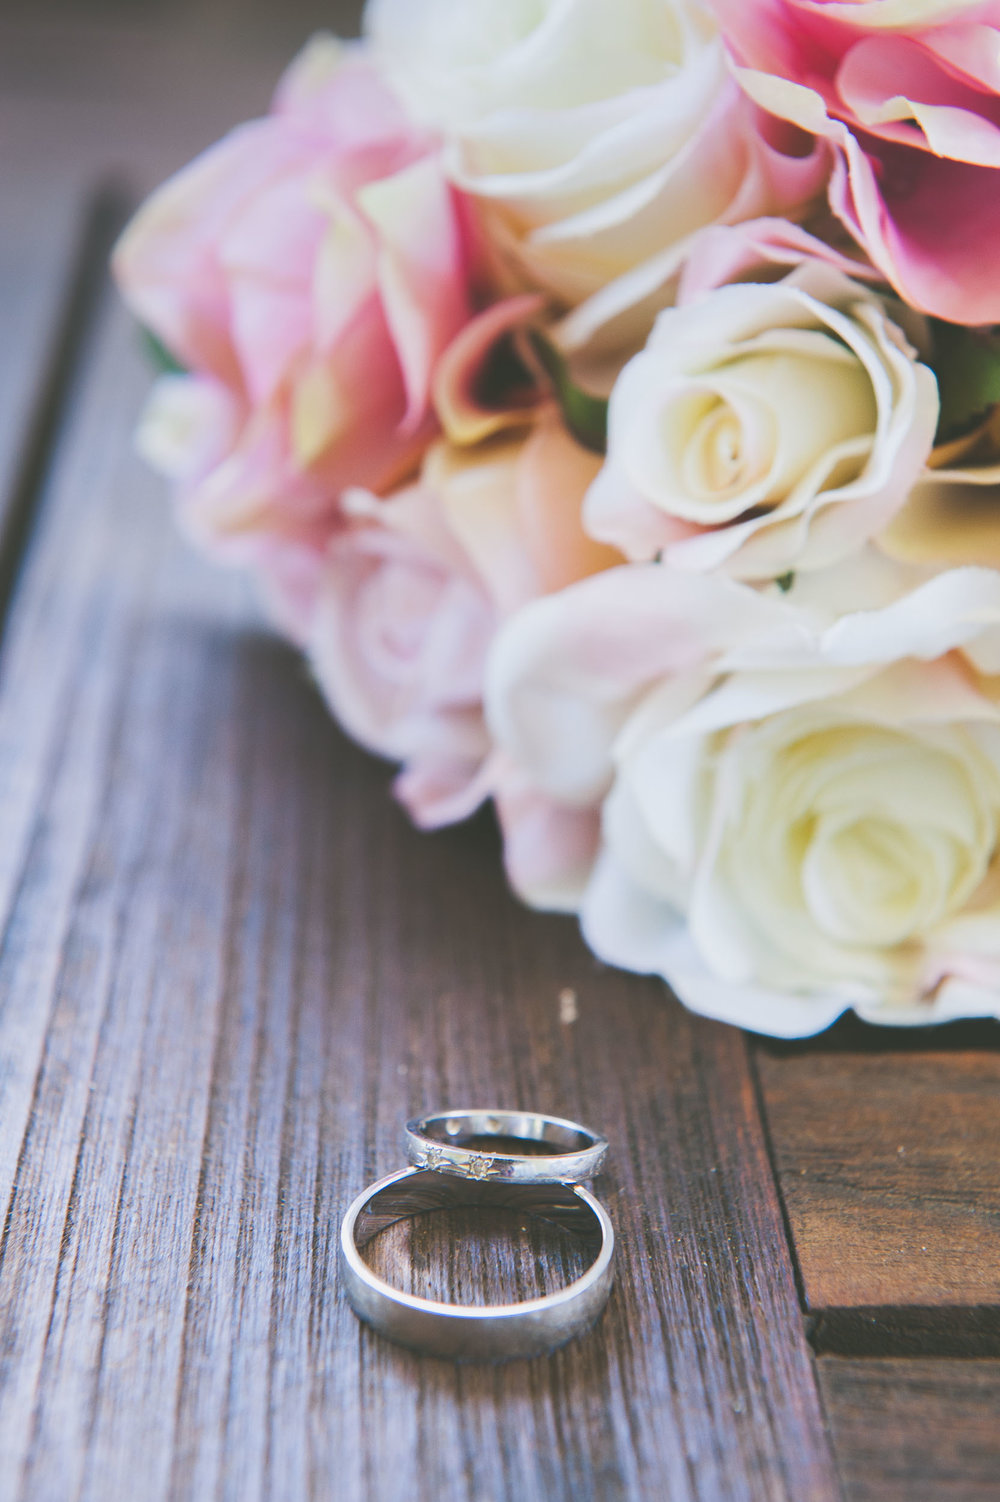 Pink bouquet and rings - Weddings - Photo credit Nicola Bailey.jpg